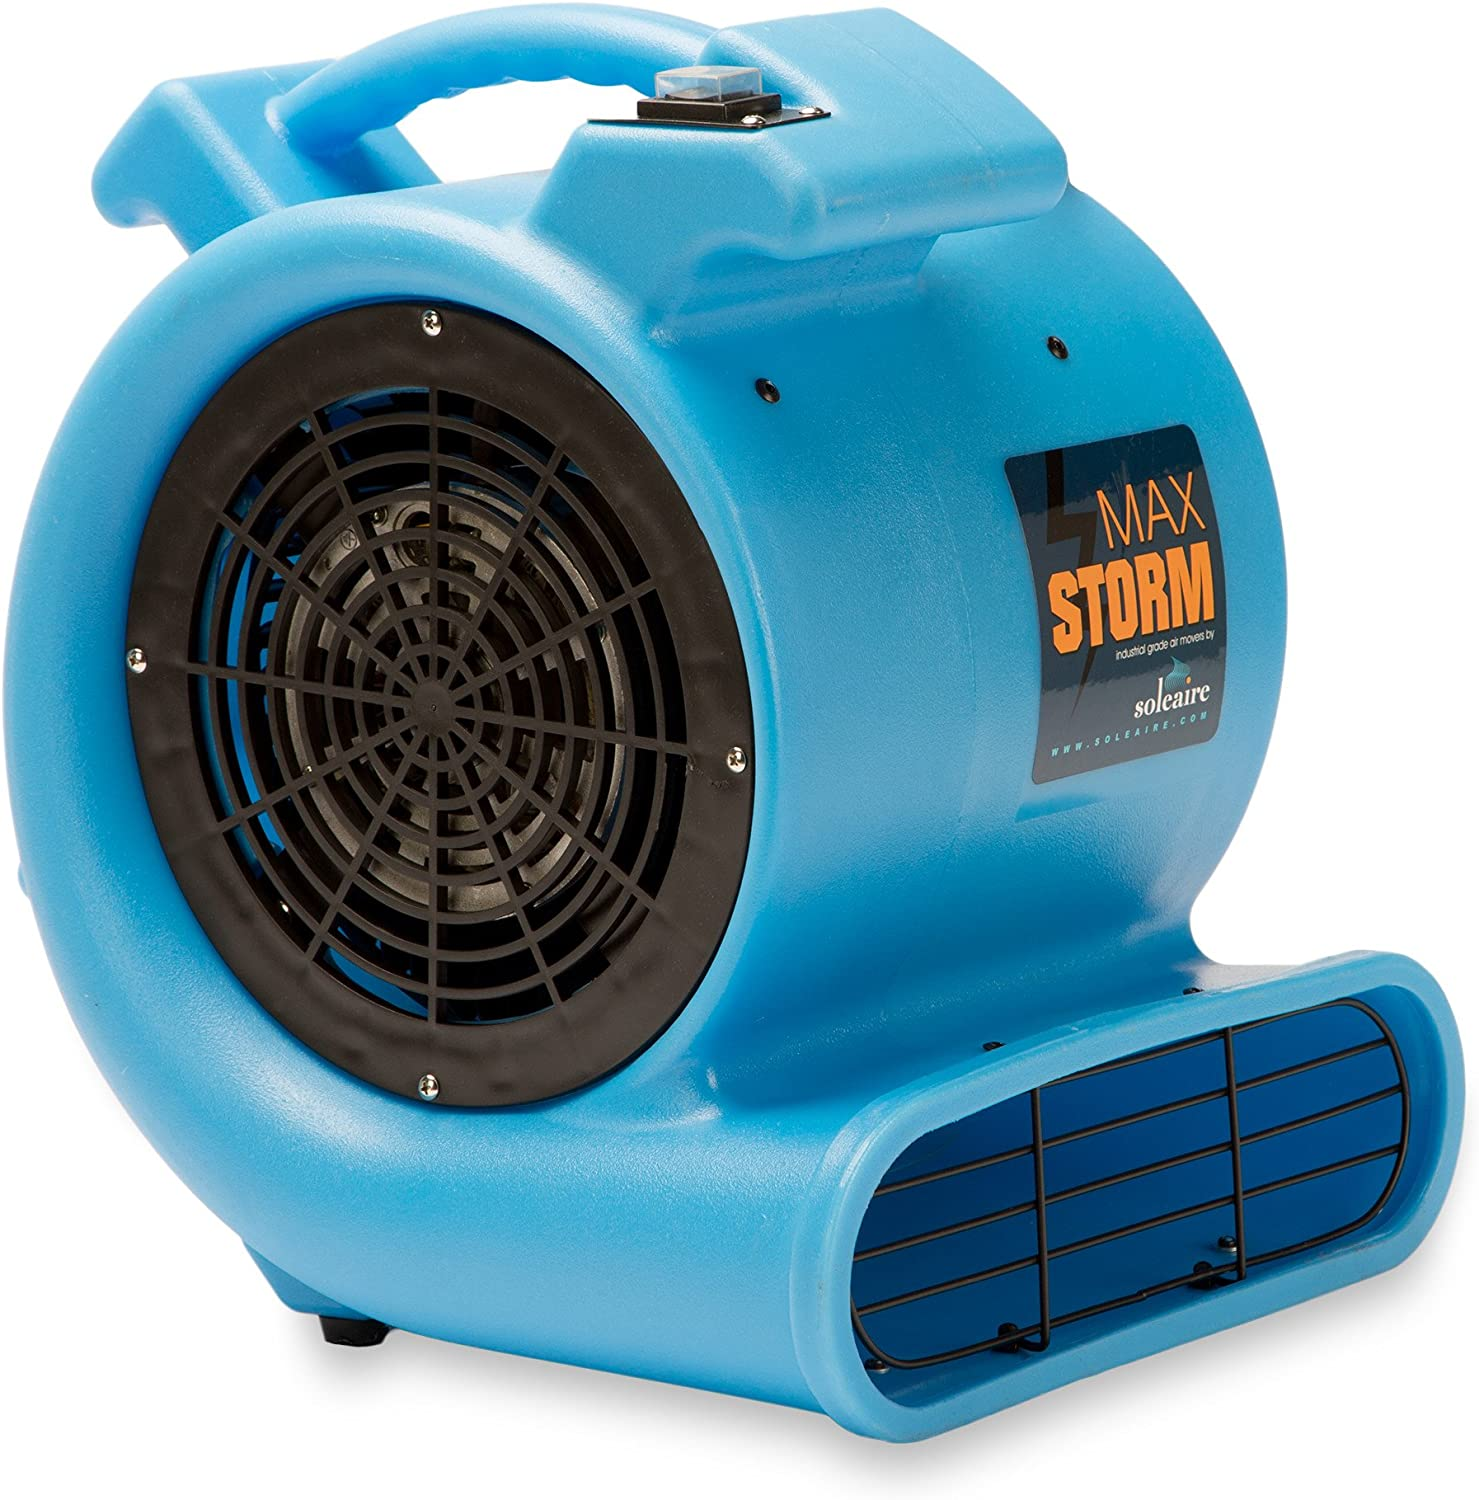 Max Storm 1 2 HP Durable Lightweight Air Mover Carpet Dryer Blower Floor Fan for Pro Janitorial Cleaner, Blue